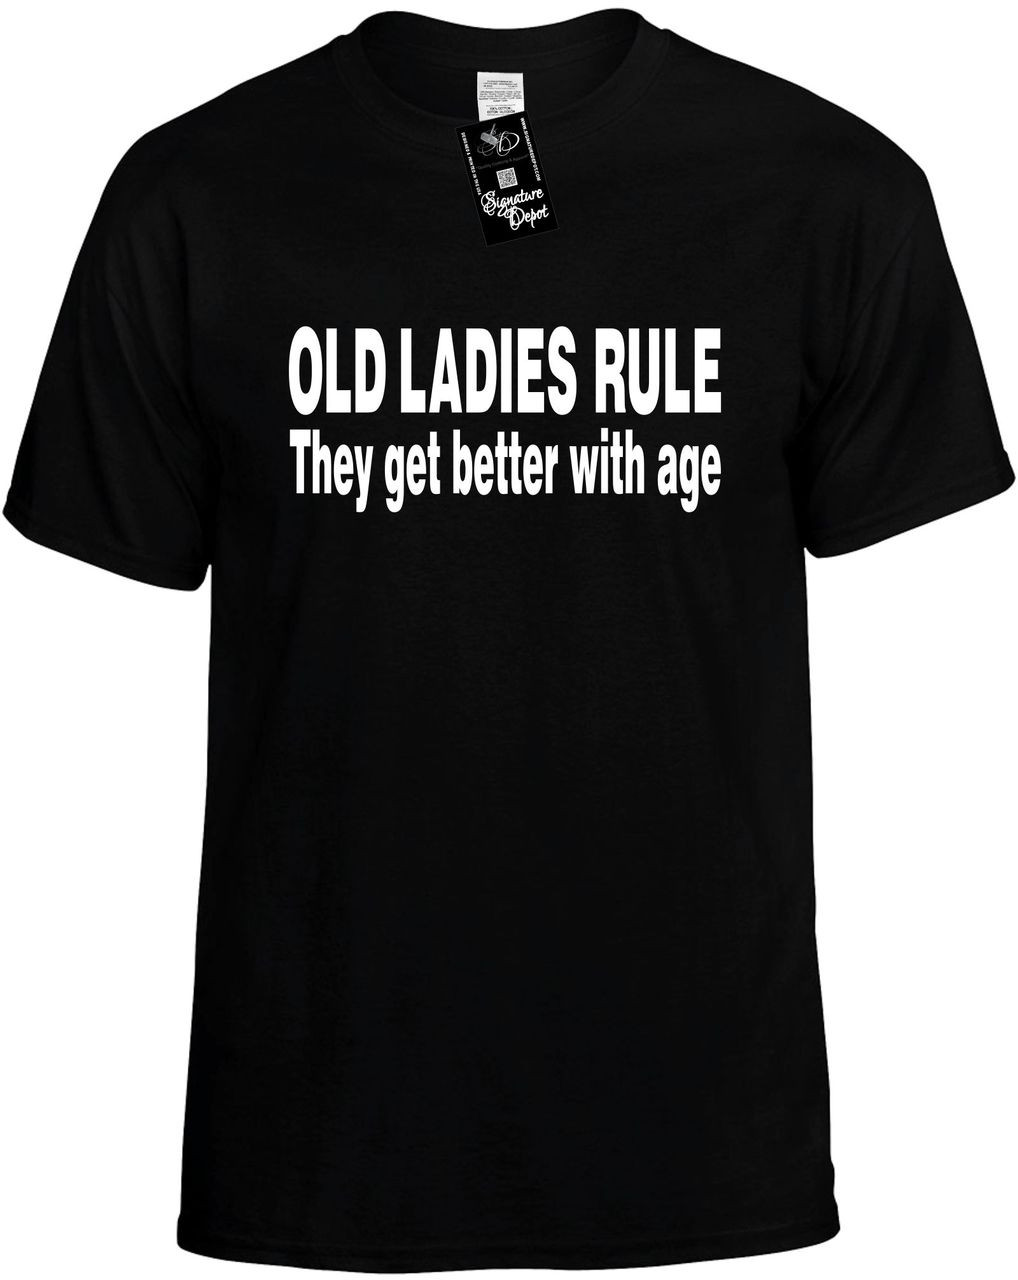 Ladies V-neck Really T-Shirt Humor Gift Funny Tee T Shirt Short Sleeve